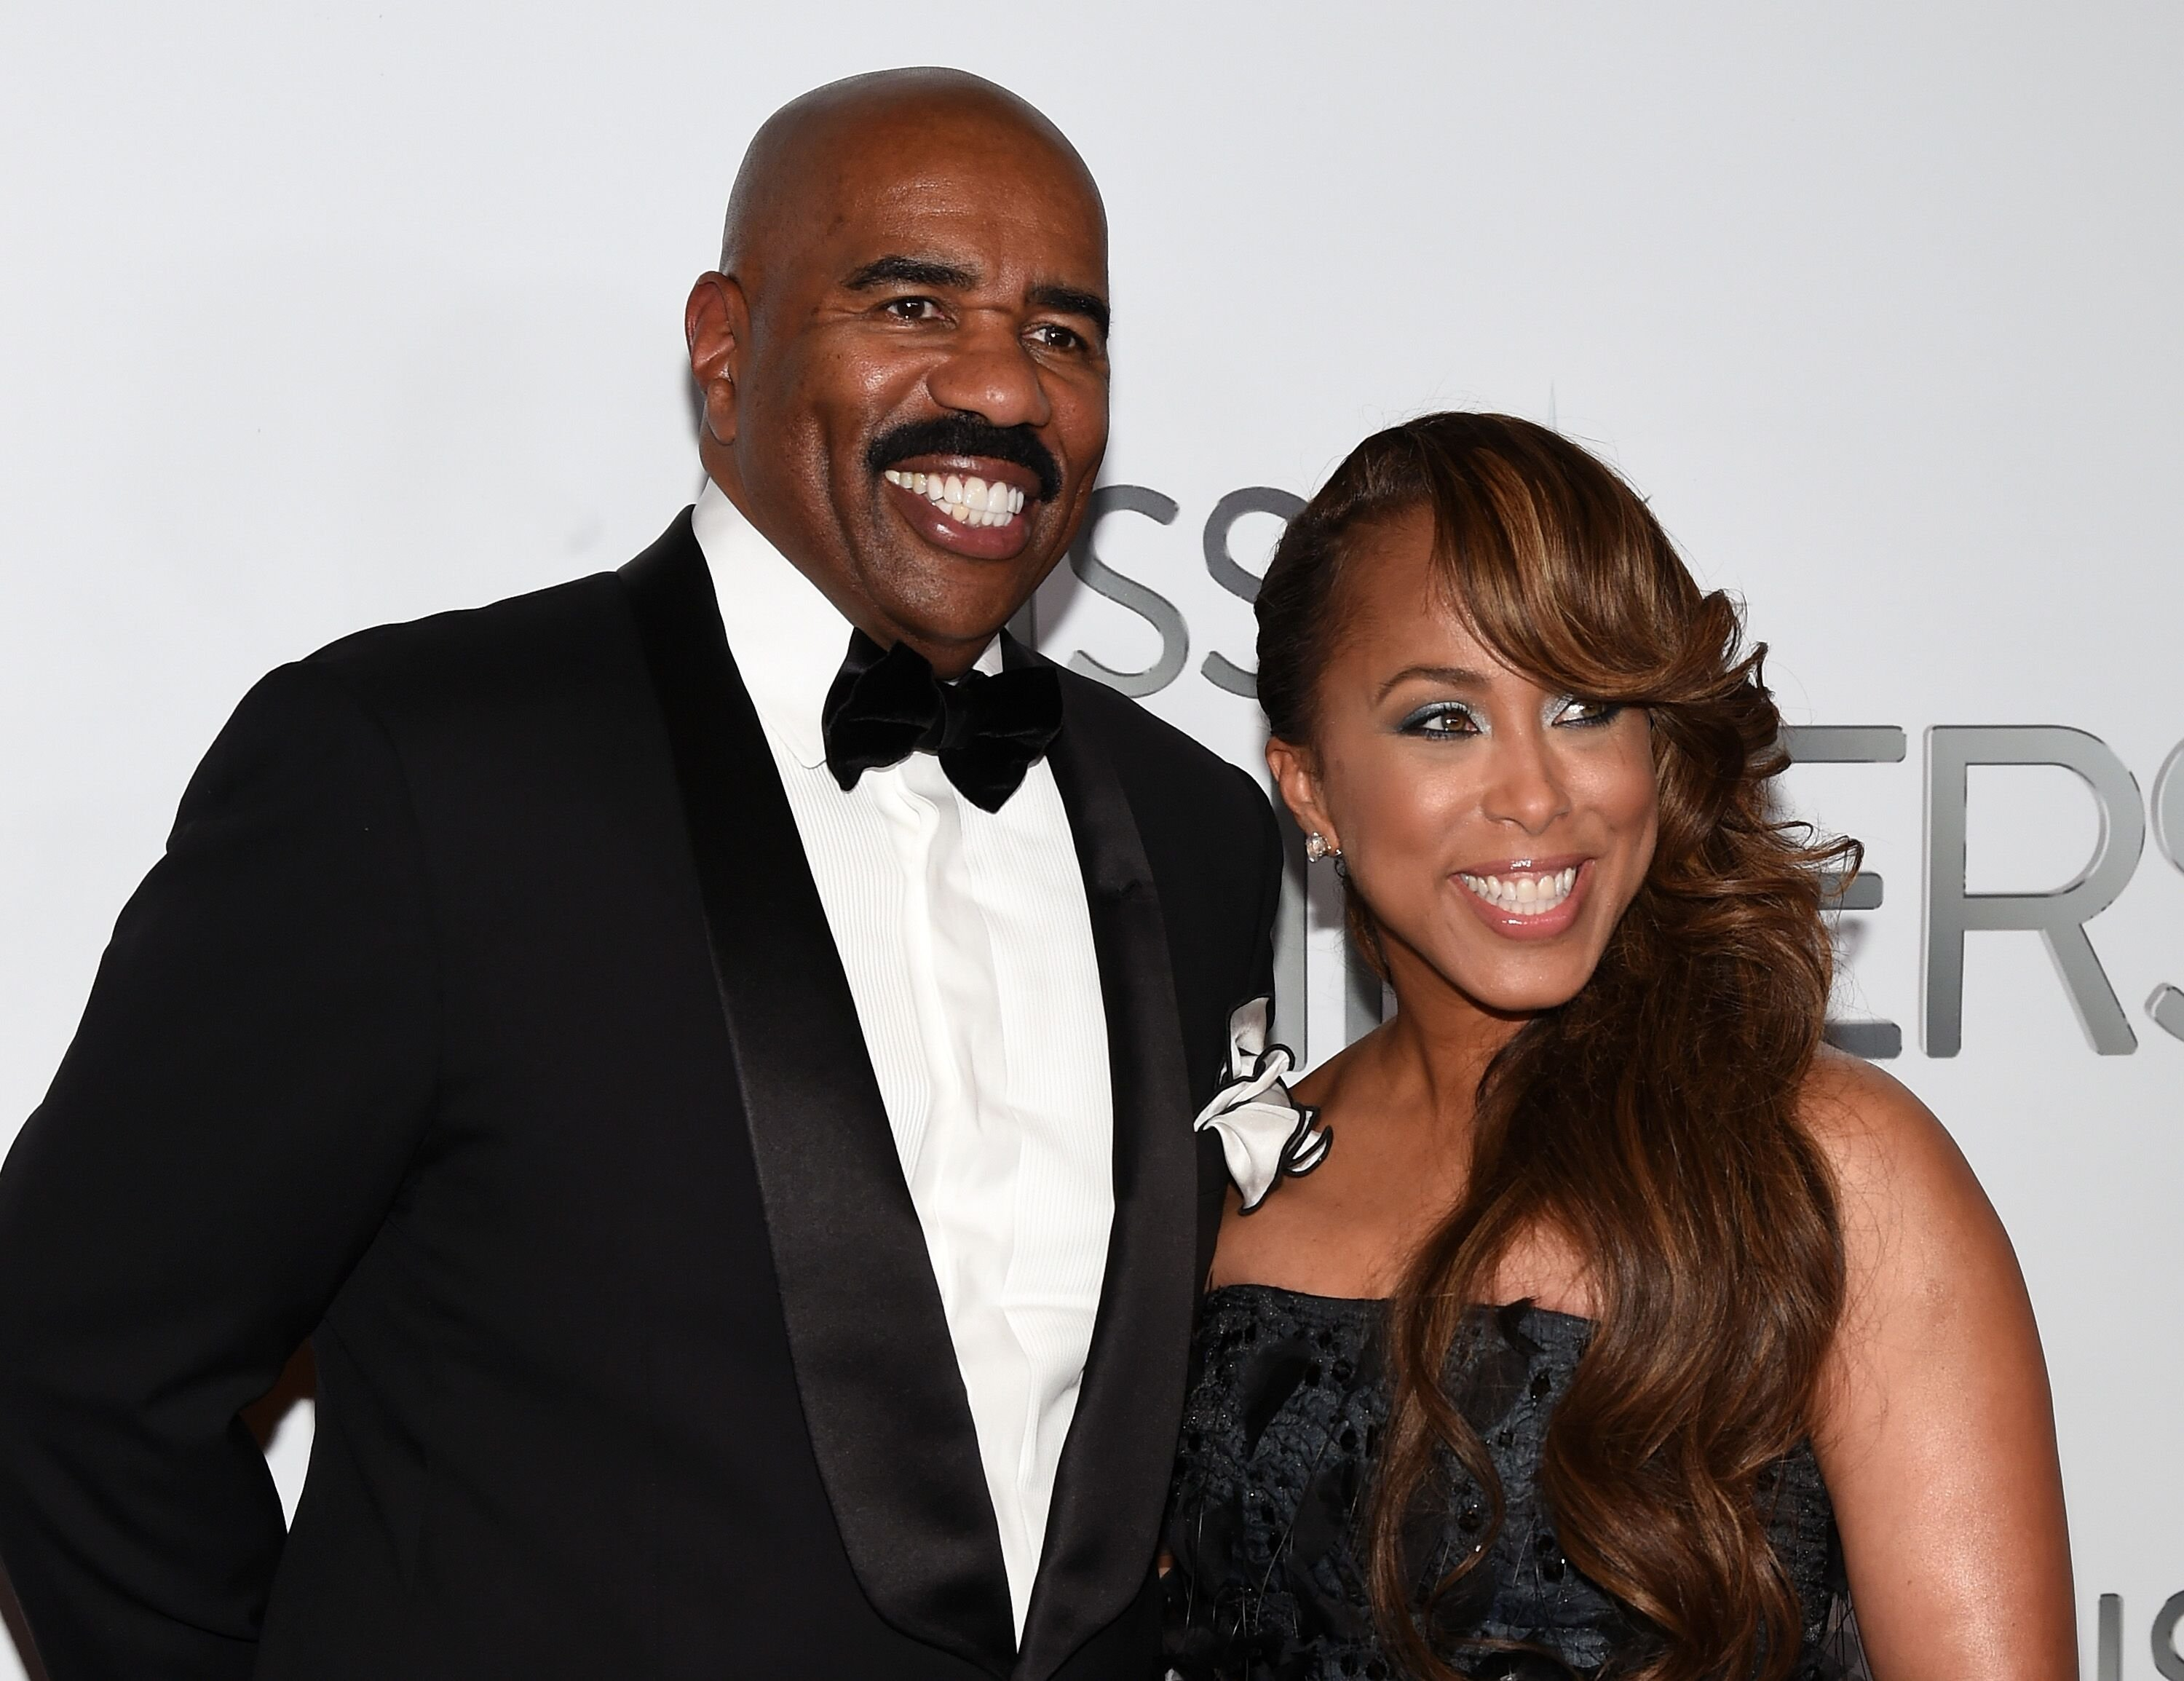 Steve Harvey and his wife Marjorie Harvey at the 2015 Miss Universe Pageant in Las Vegas | Source: Getty Images